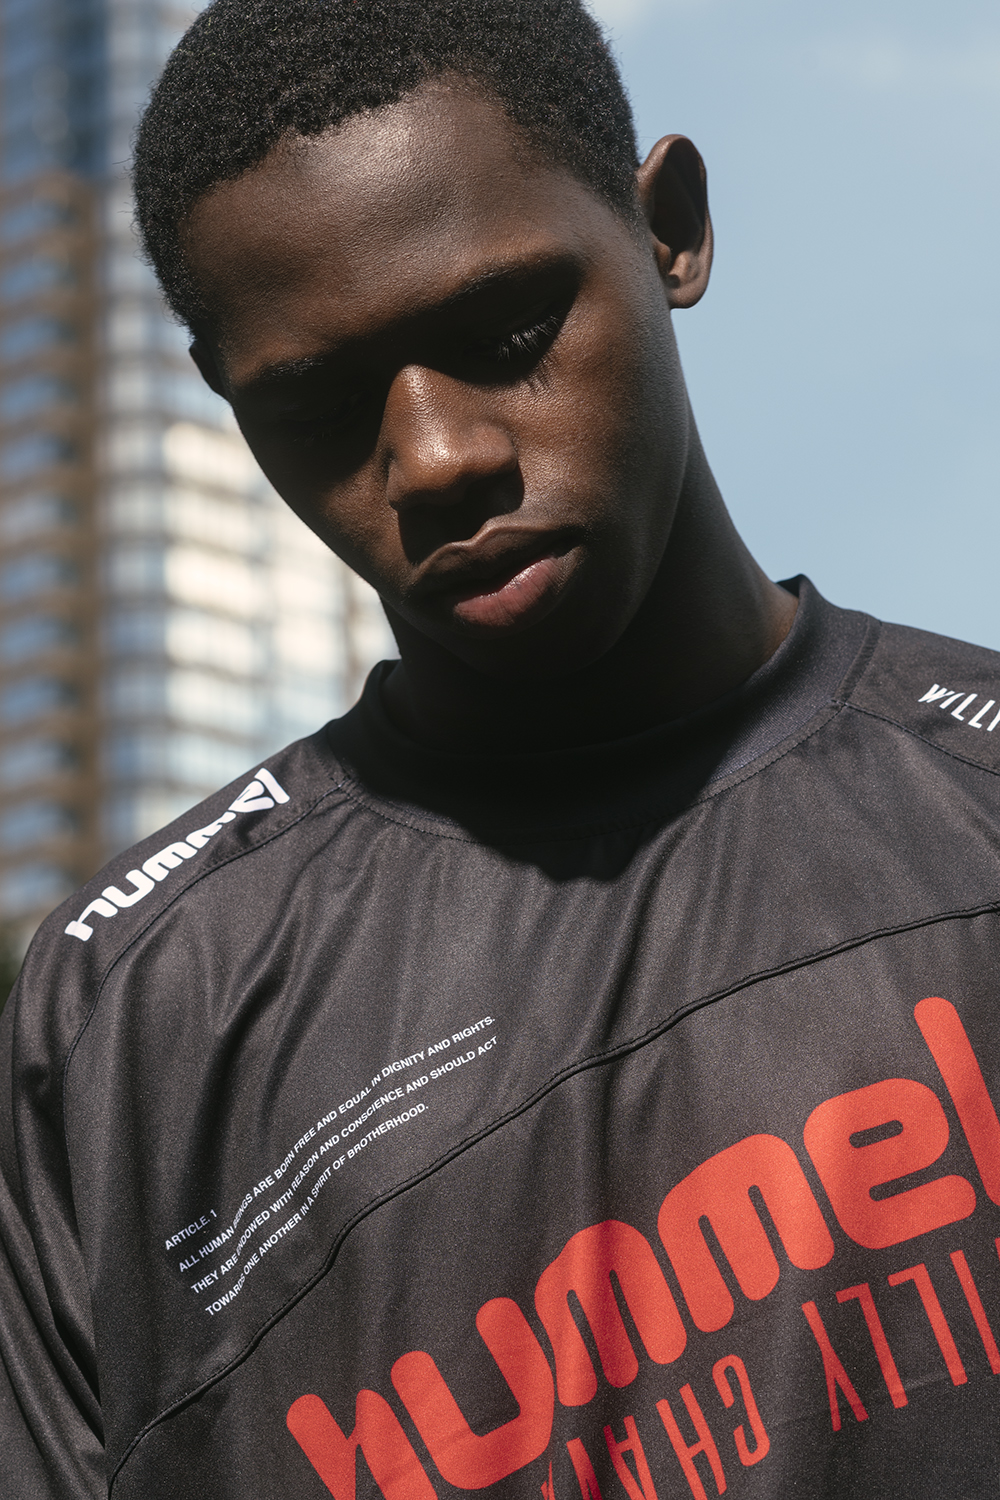 WILLY CHAVARRIA has partnered with Danish fútball brand Hummel to create a collection which will sponsor and support the players of the ROOKLYN SOCCER LEAGUE in New York City. We proudly support and endorse RIFA and the refugee, asylee and immigrant youth who play.  WILLY CHAVARRIA strongly supports immigrant rights. We act to encourage the sharing of ideas, talent, energy from all global territories.    HUMMEL X WILLY CHAVARRIA  is a tribute to both hummel's proud football tradition and the ability of sport to create a better life for future generations  To Learn more about RIFA click here:   https://www.rooklynfootball.org/